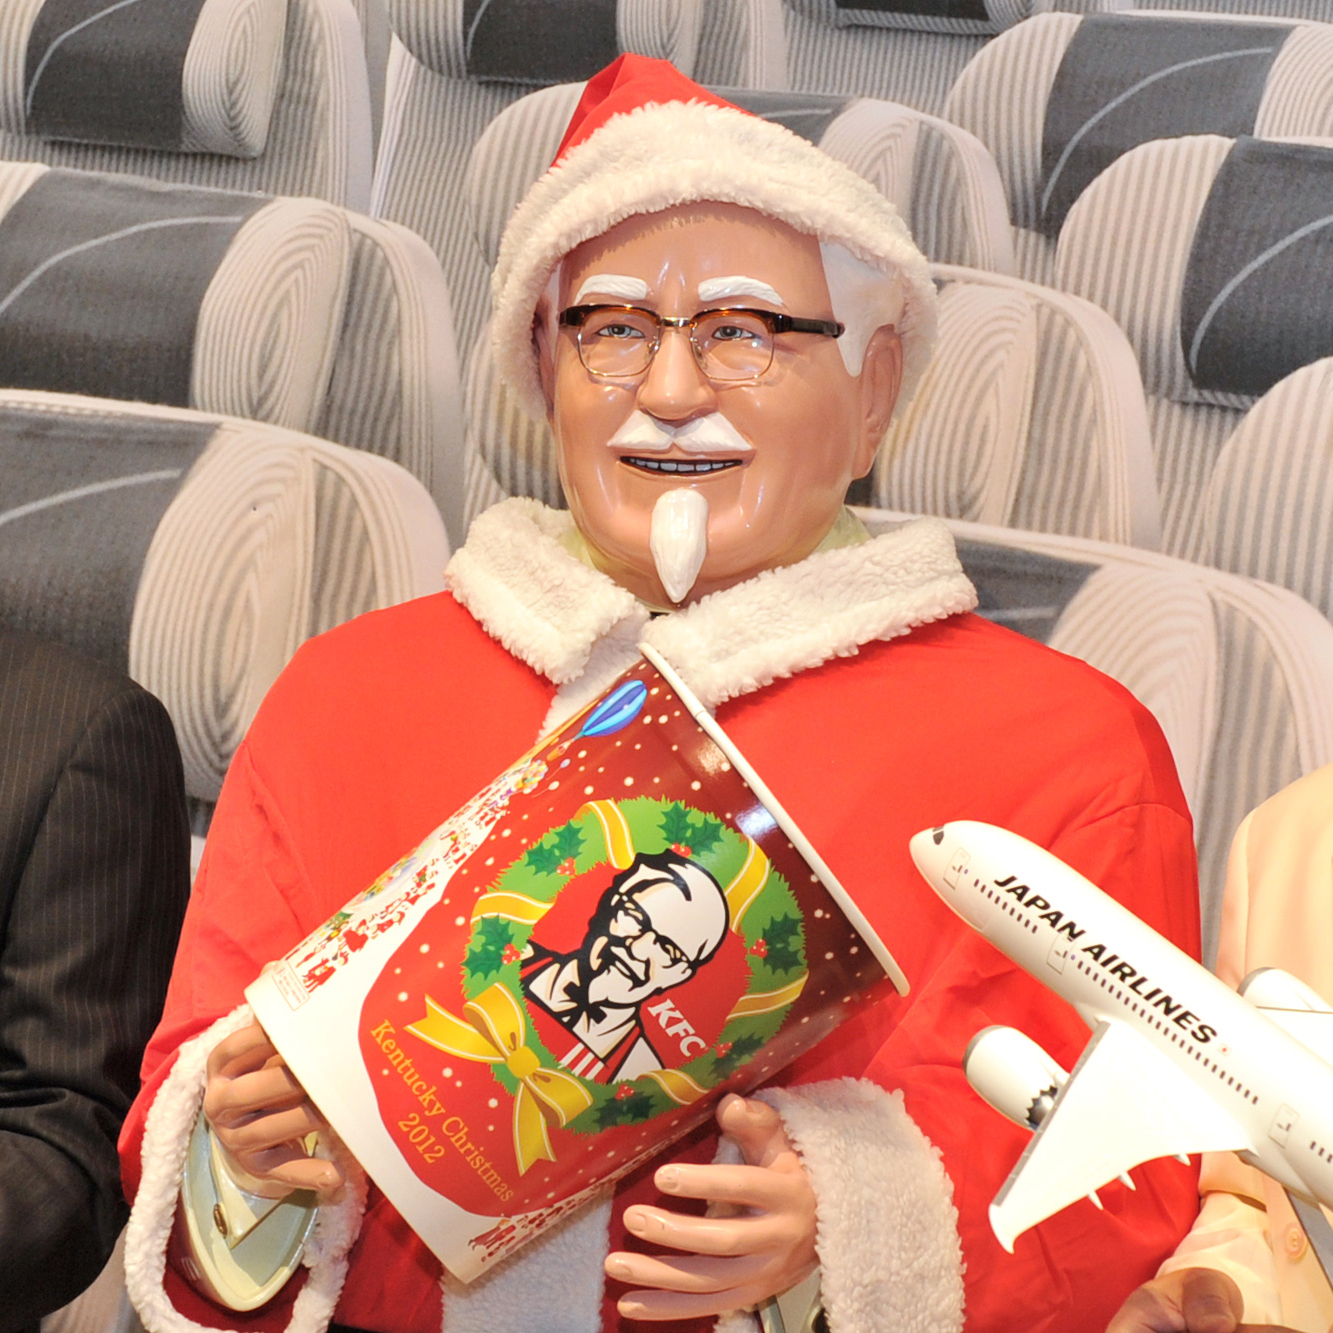 In Japan, Eating KFC Is a Christmas Tradition